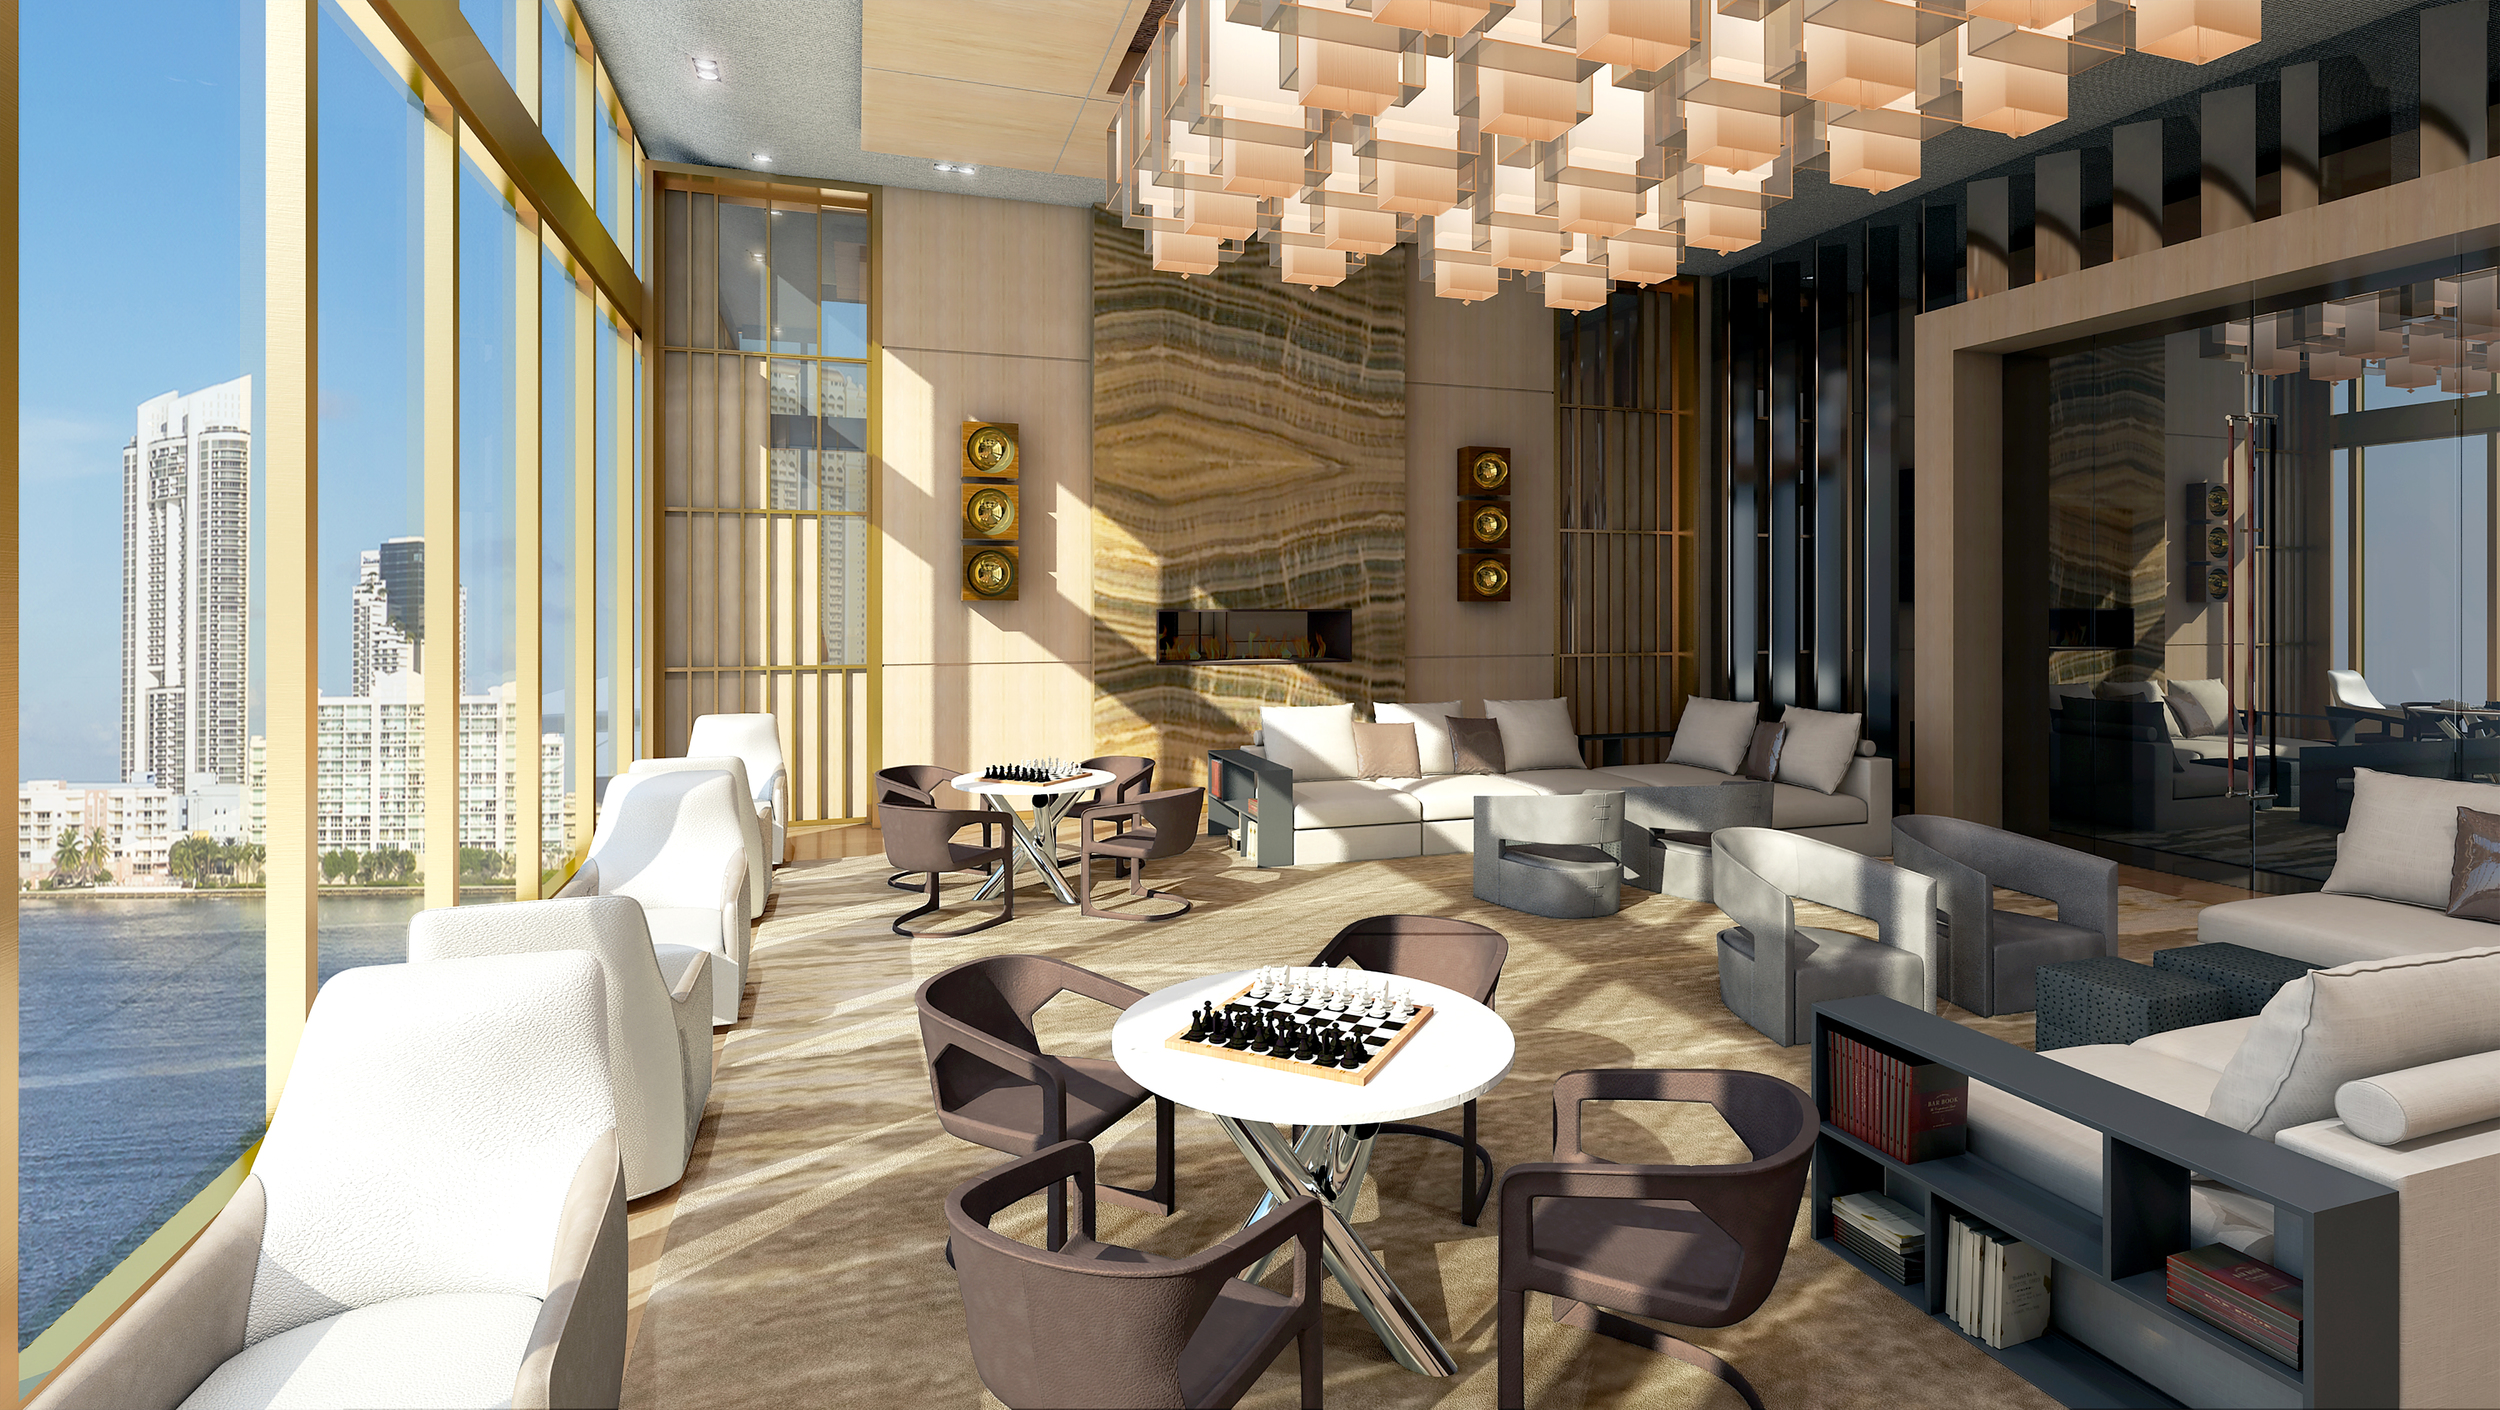 3-AMENITIES-PRIVE_SOCIAL_ROOM_MAIN_RENDERING.jpg